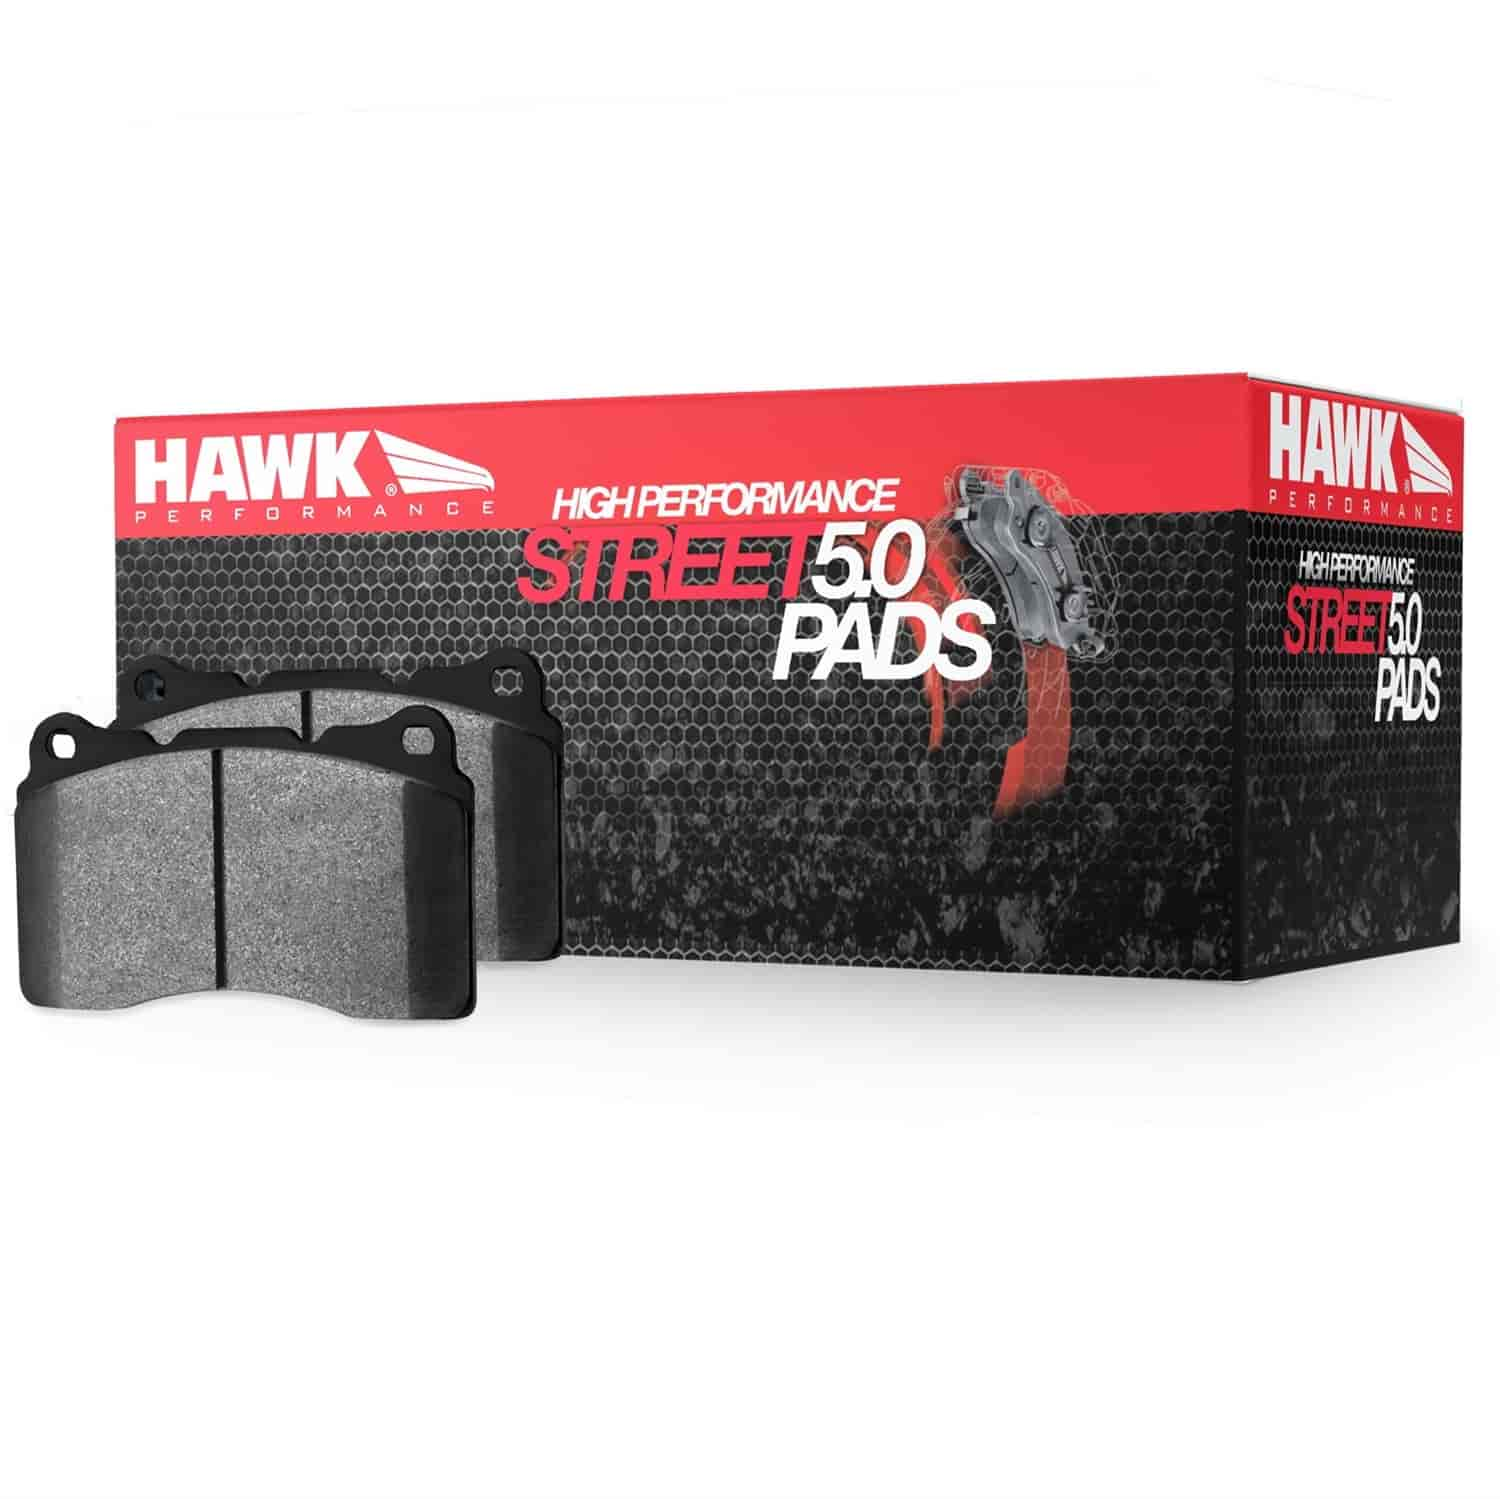 Hawk Performance HB650B.730 Disc Brake Pad HPS 5.0 w//0.730 Thickness Disc...